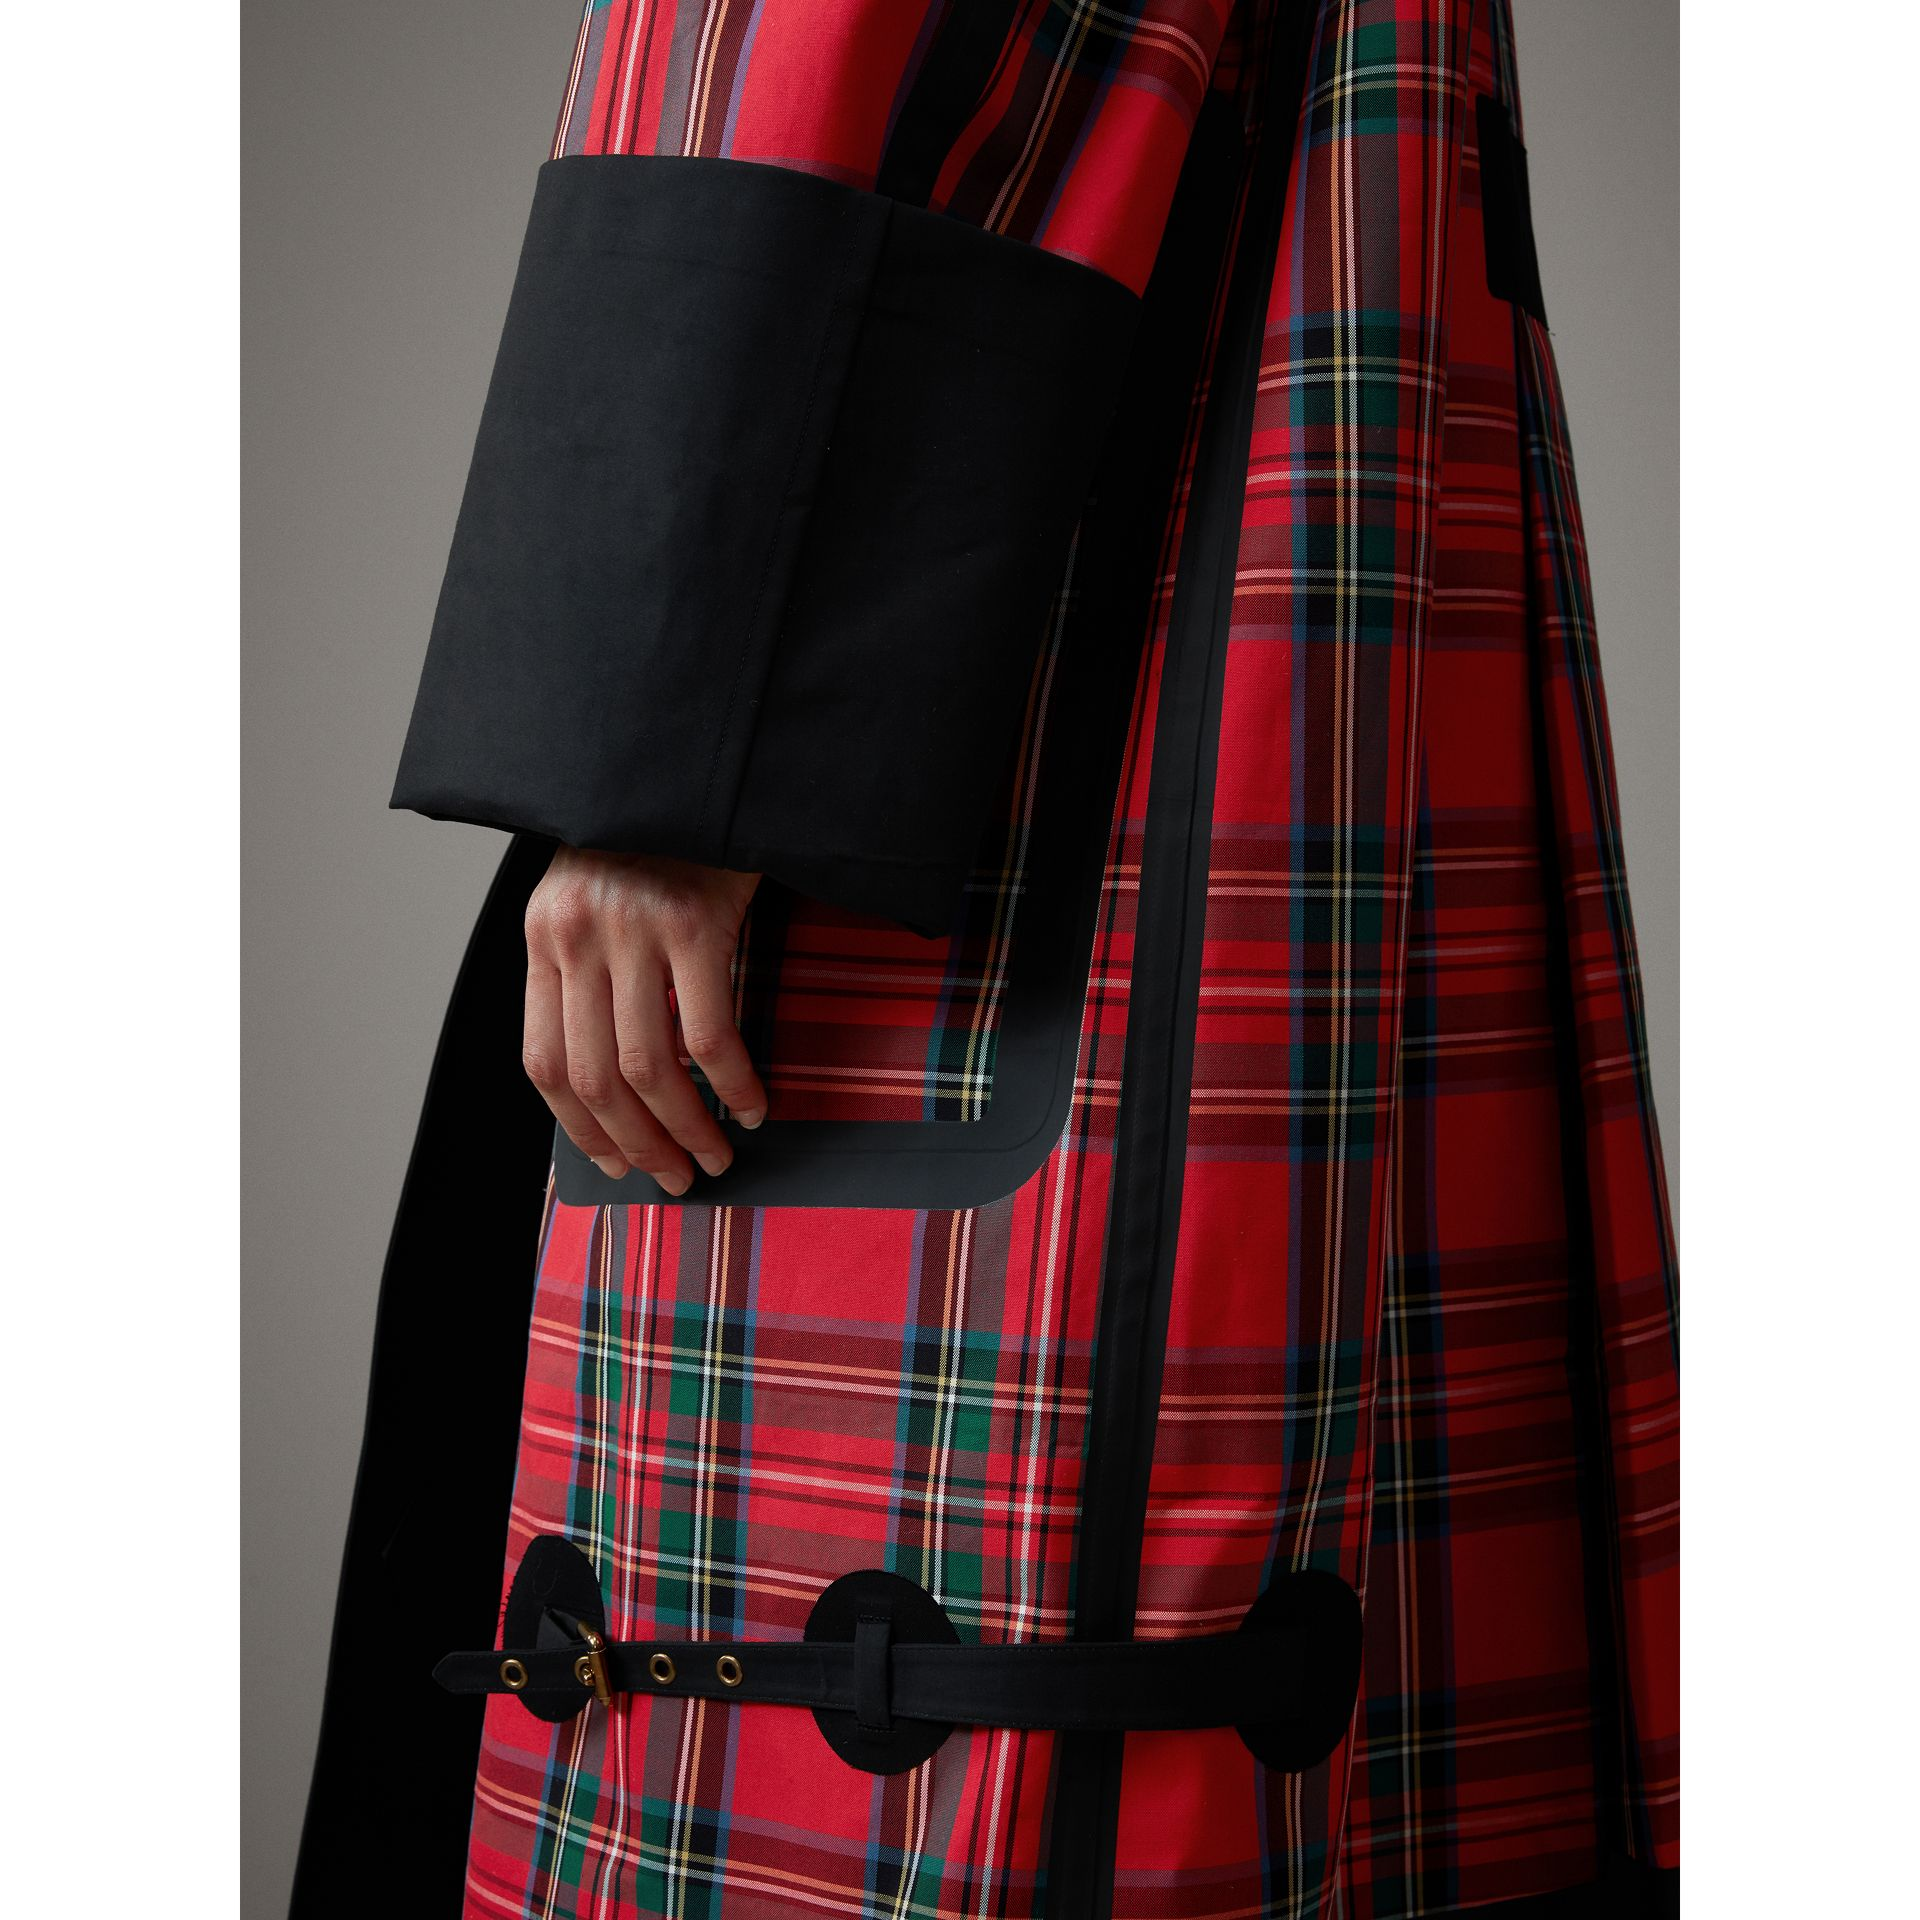 Tartan Bonded Cotton Seam-sealed Oversized Car Coat in Black - Women | Burberry United States - gallery image 1